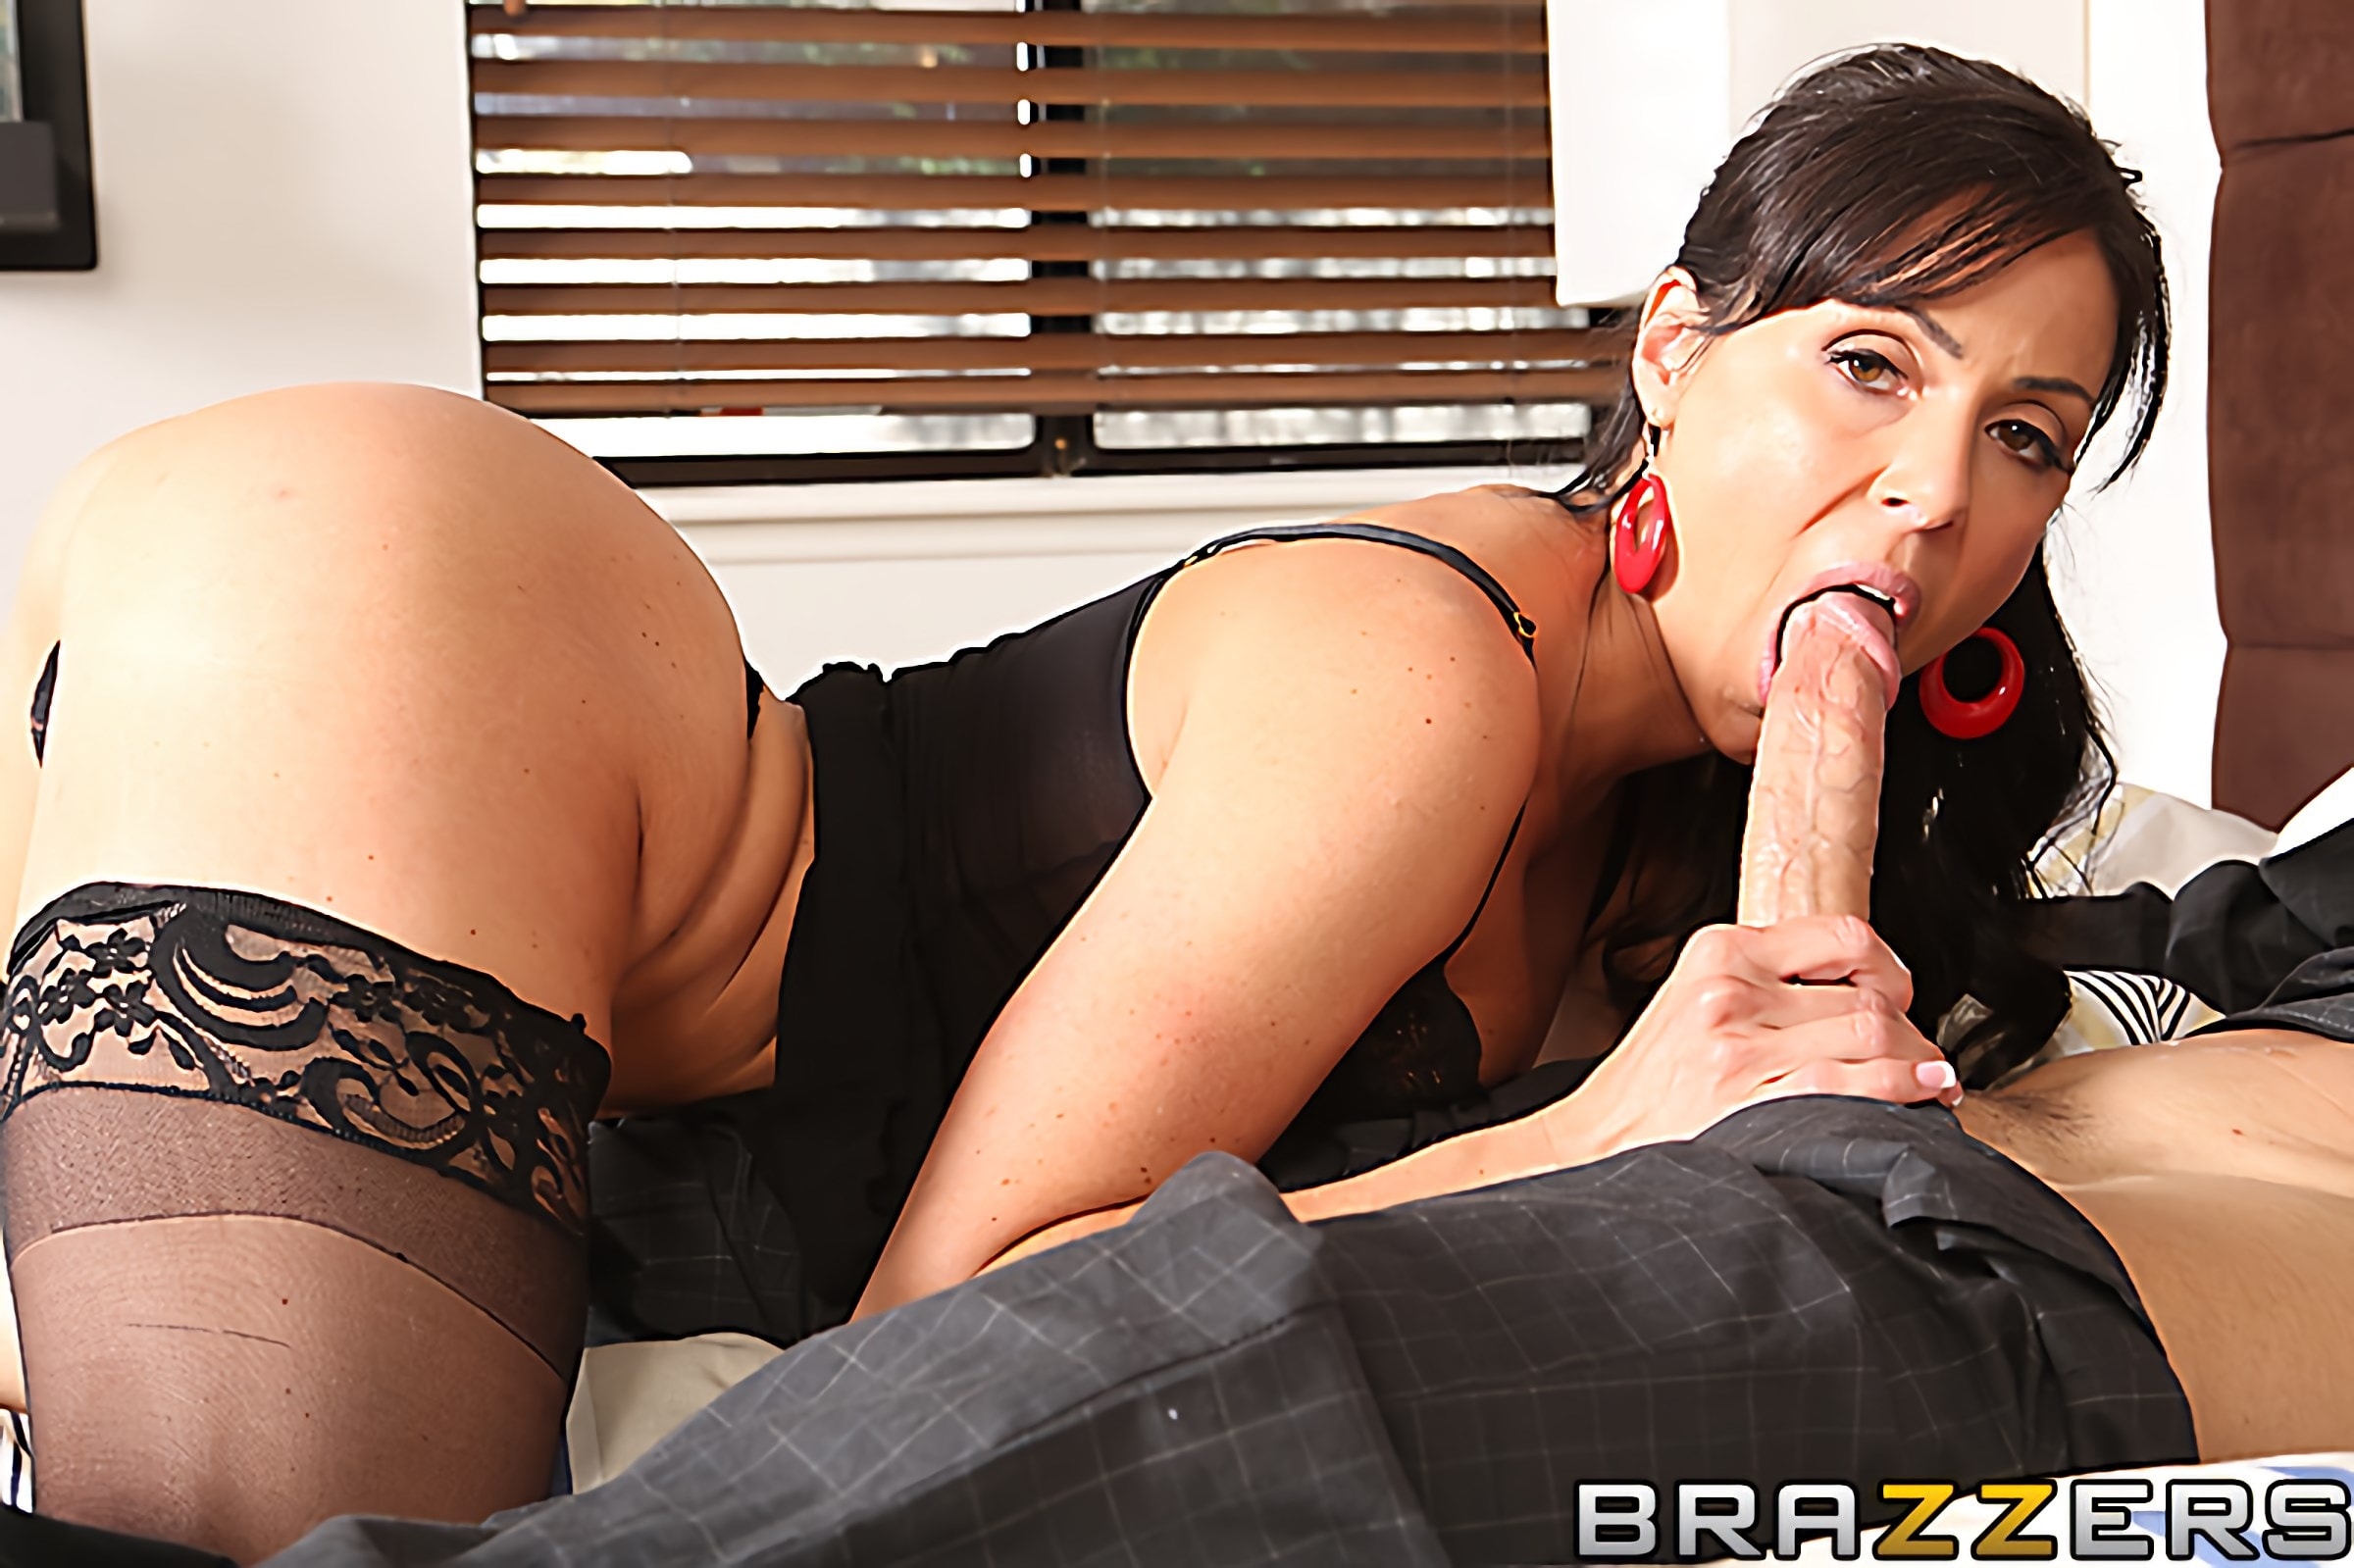 Brazzers 'DickFan' starring Kendra Lust (photo 9)